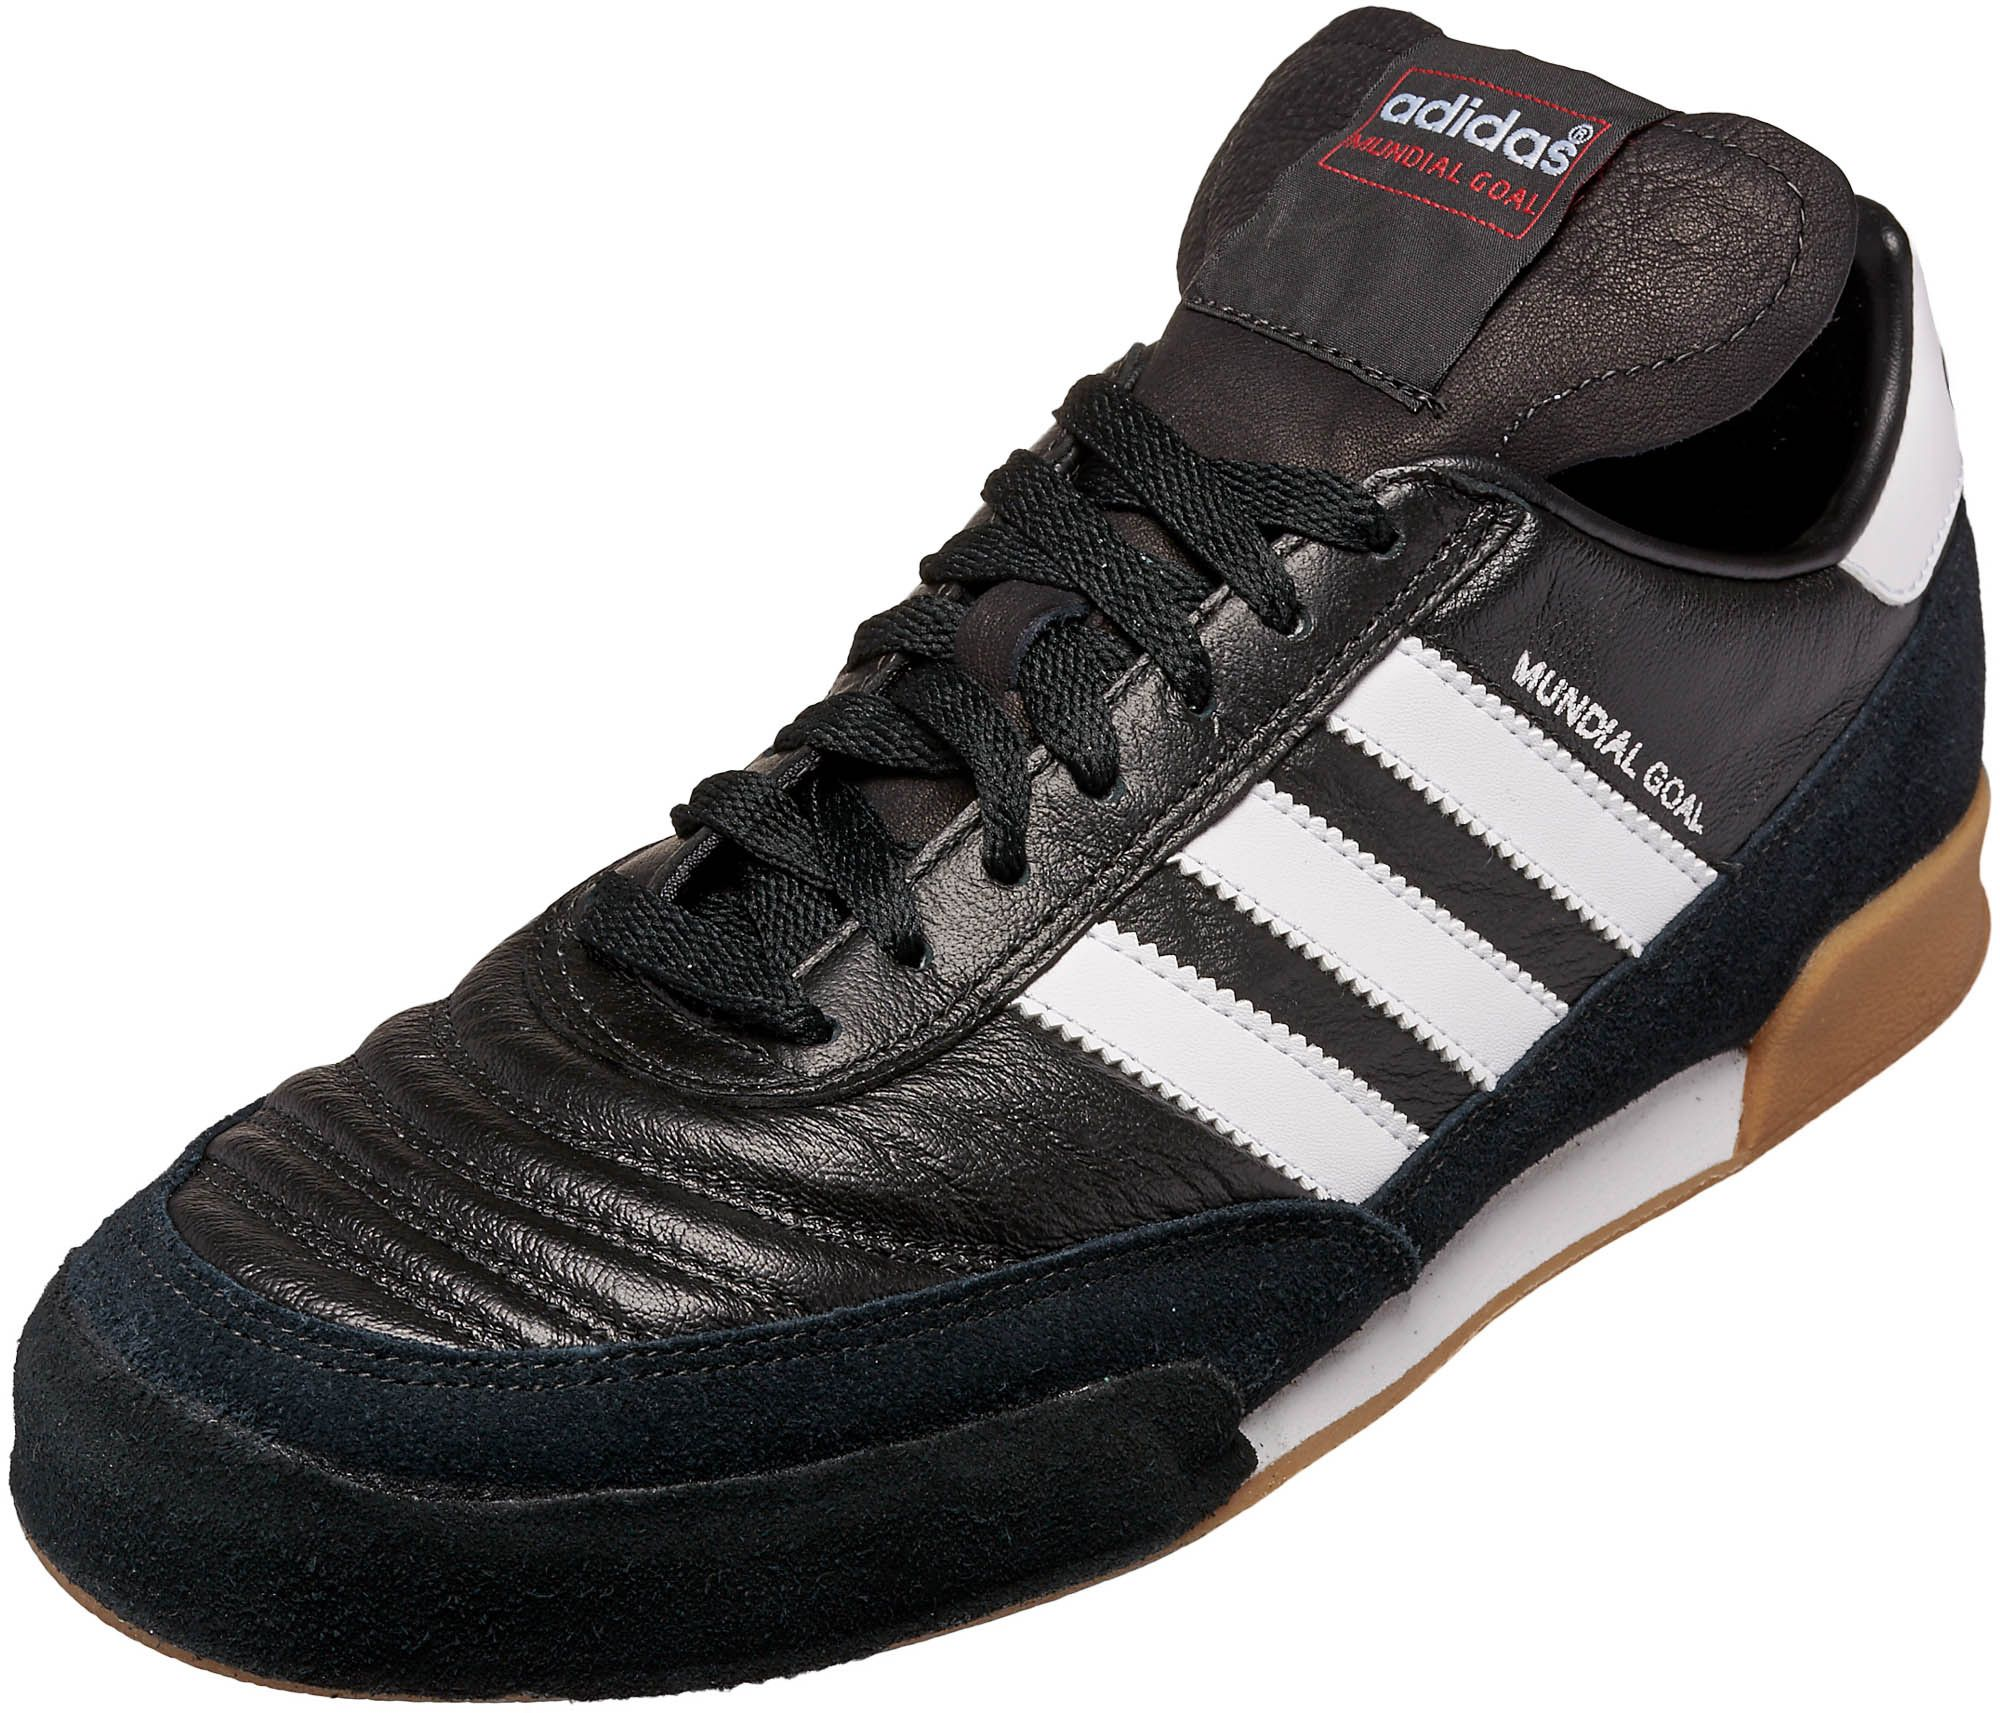 Adidas Mundial Goal Indoor Shoe Free Shipping Mundial Goal Soccer Shoes Soccer Shoes Futsal Shoes Adidas Soccer Shoes